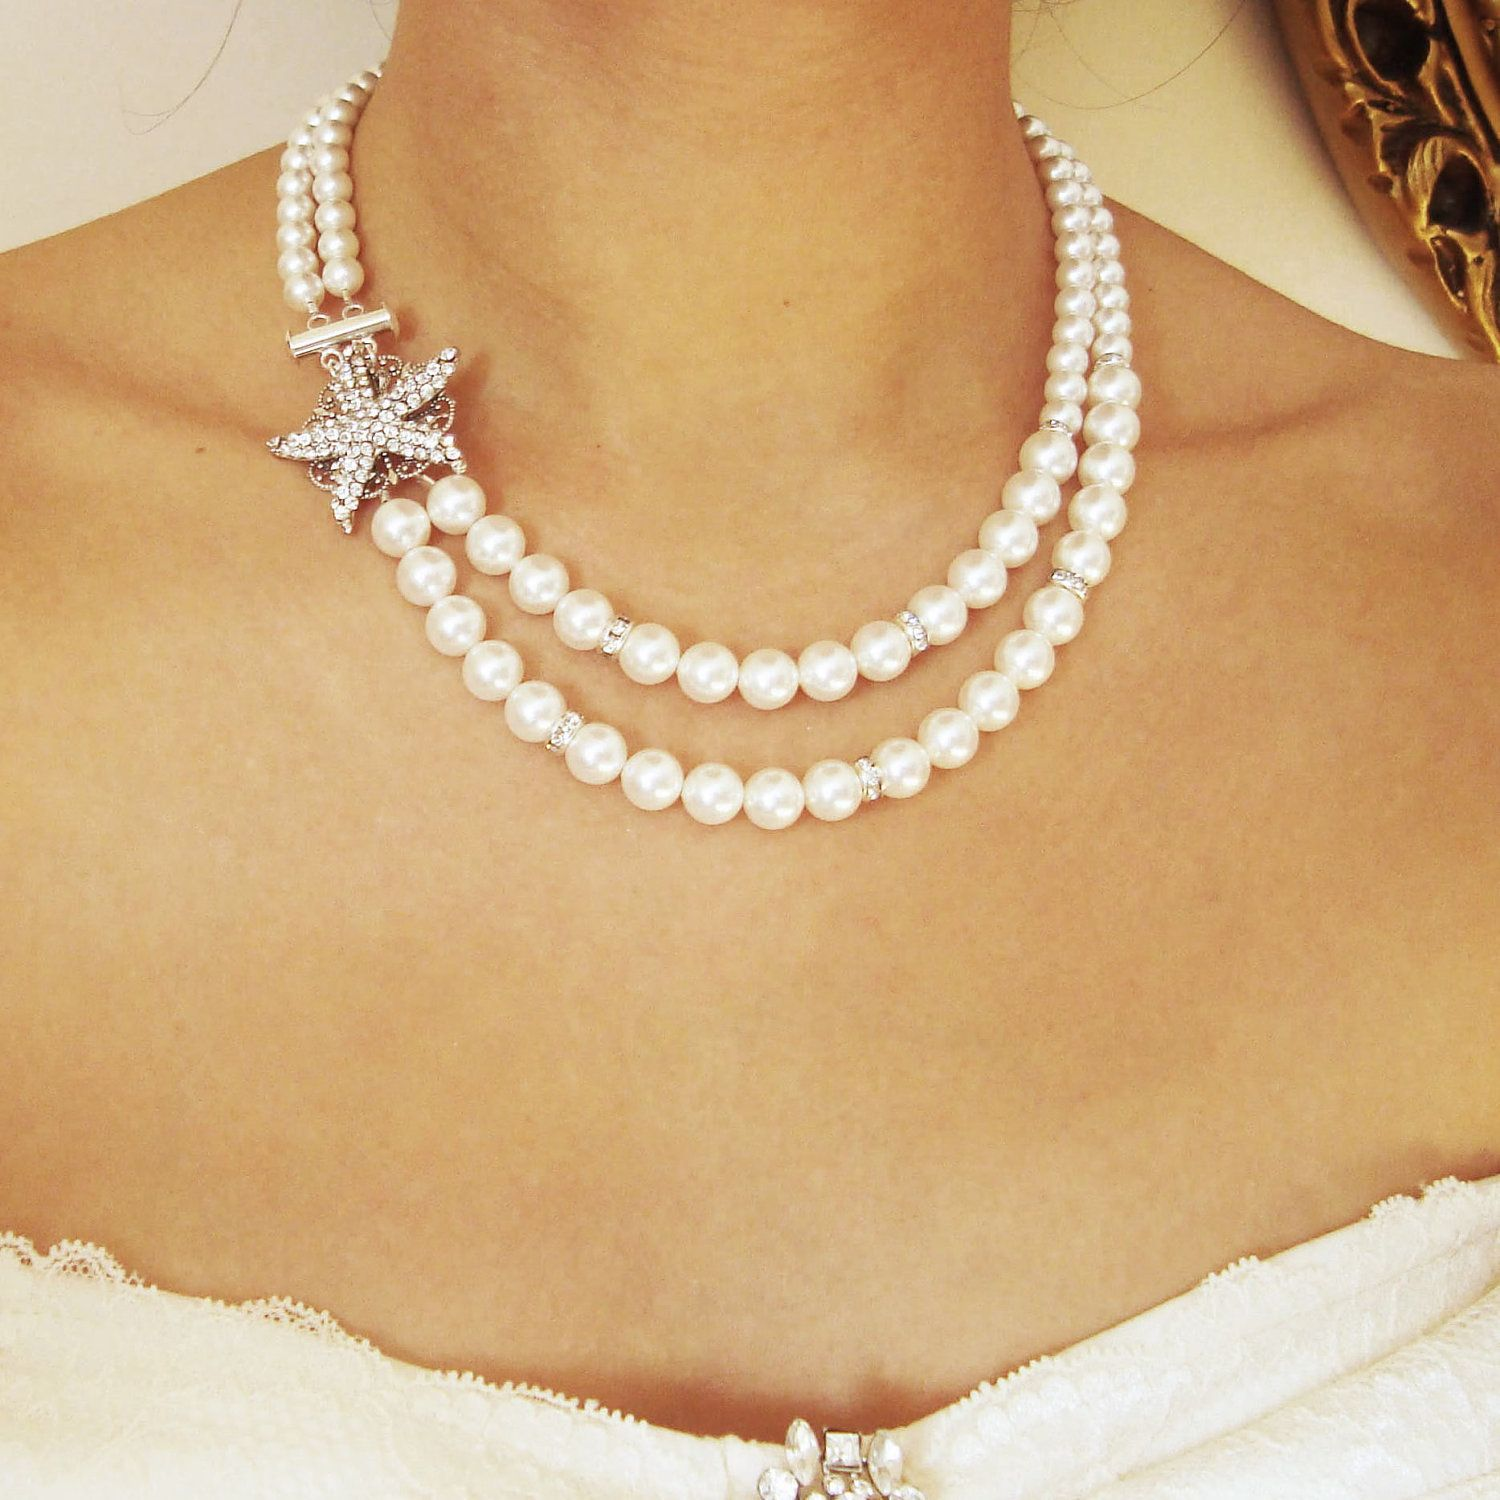 Starfish bridal necklace vintage style rhinestone necklace starfish bridal necklace vintage style rhinestone necklace destination wedding jewelry ivory white pearls junglespirit Image collections